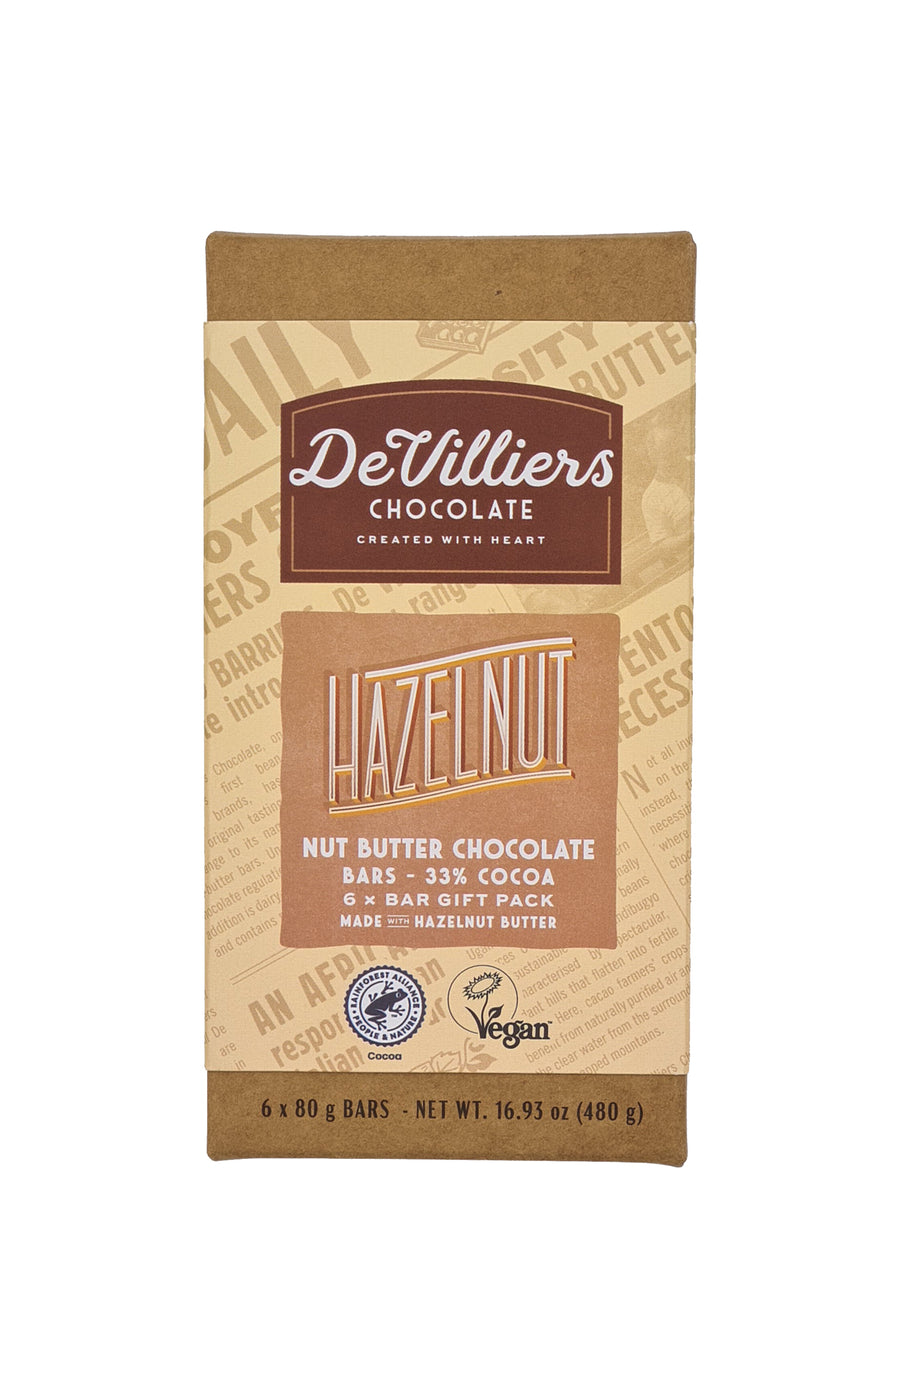 Hazelnut Nut Butter Chocolate Bar - De Villiers Chocolate